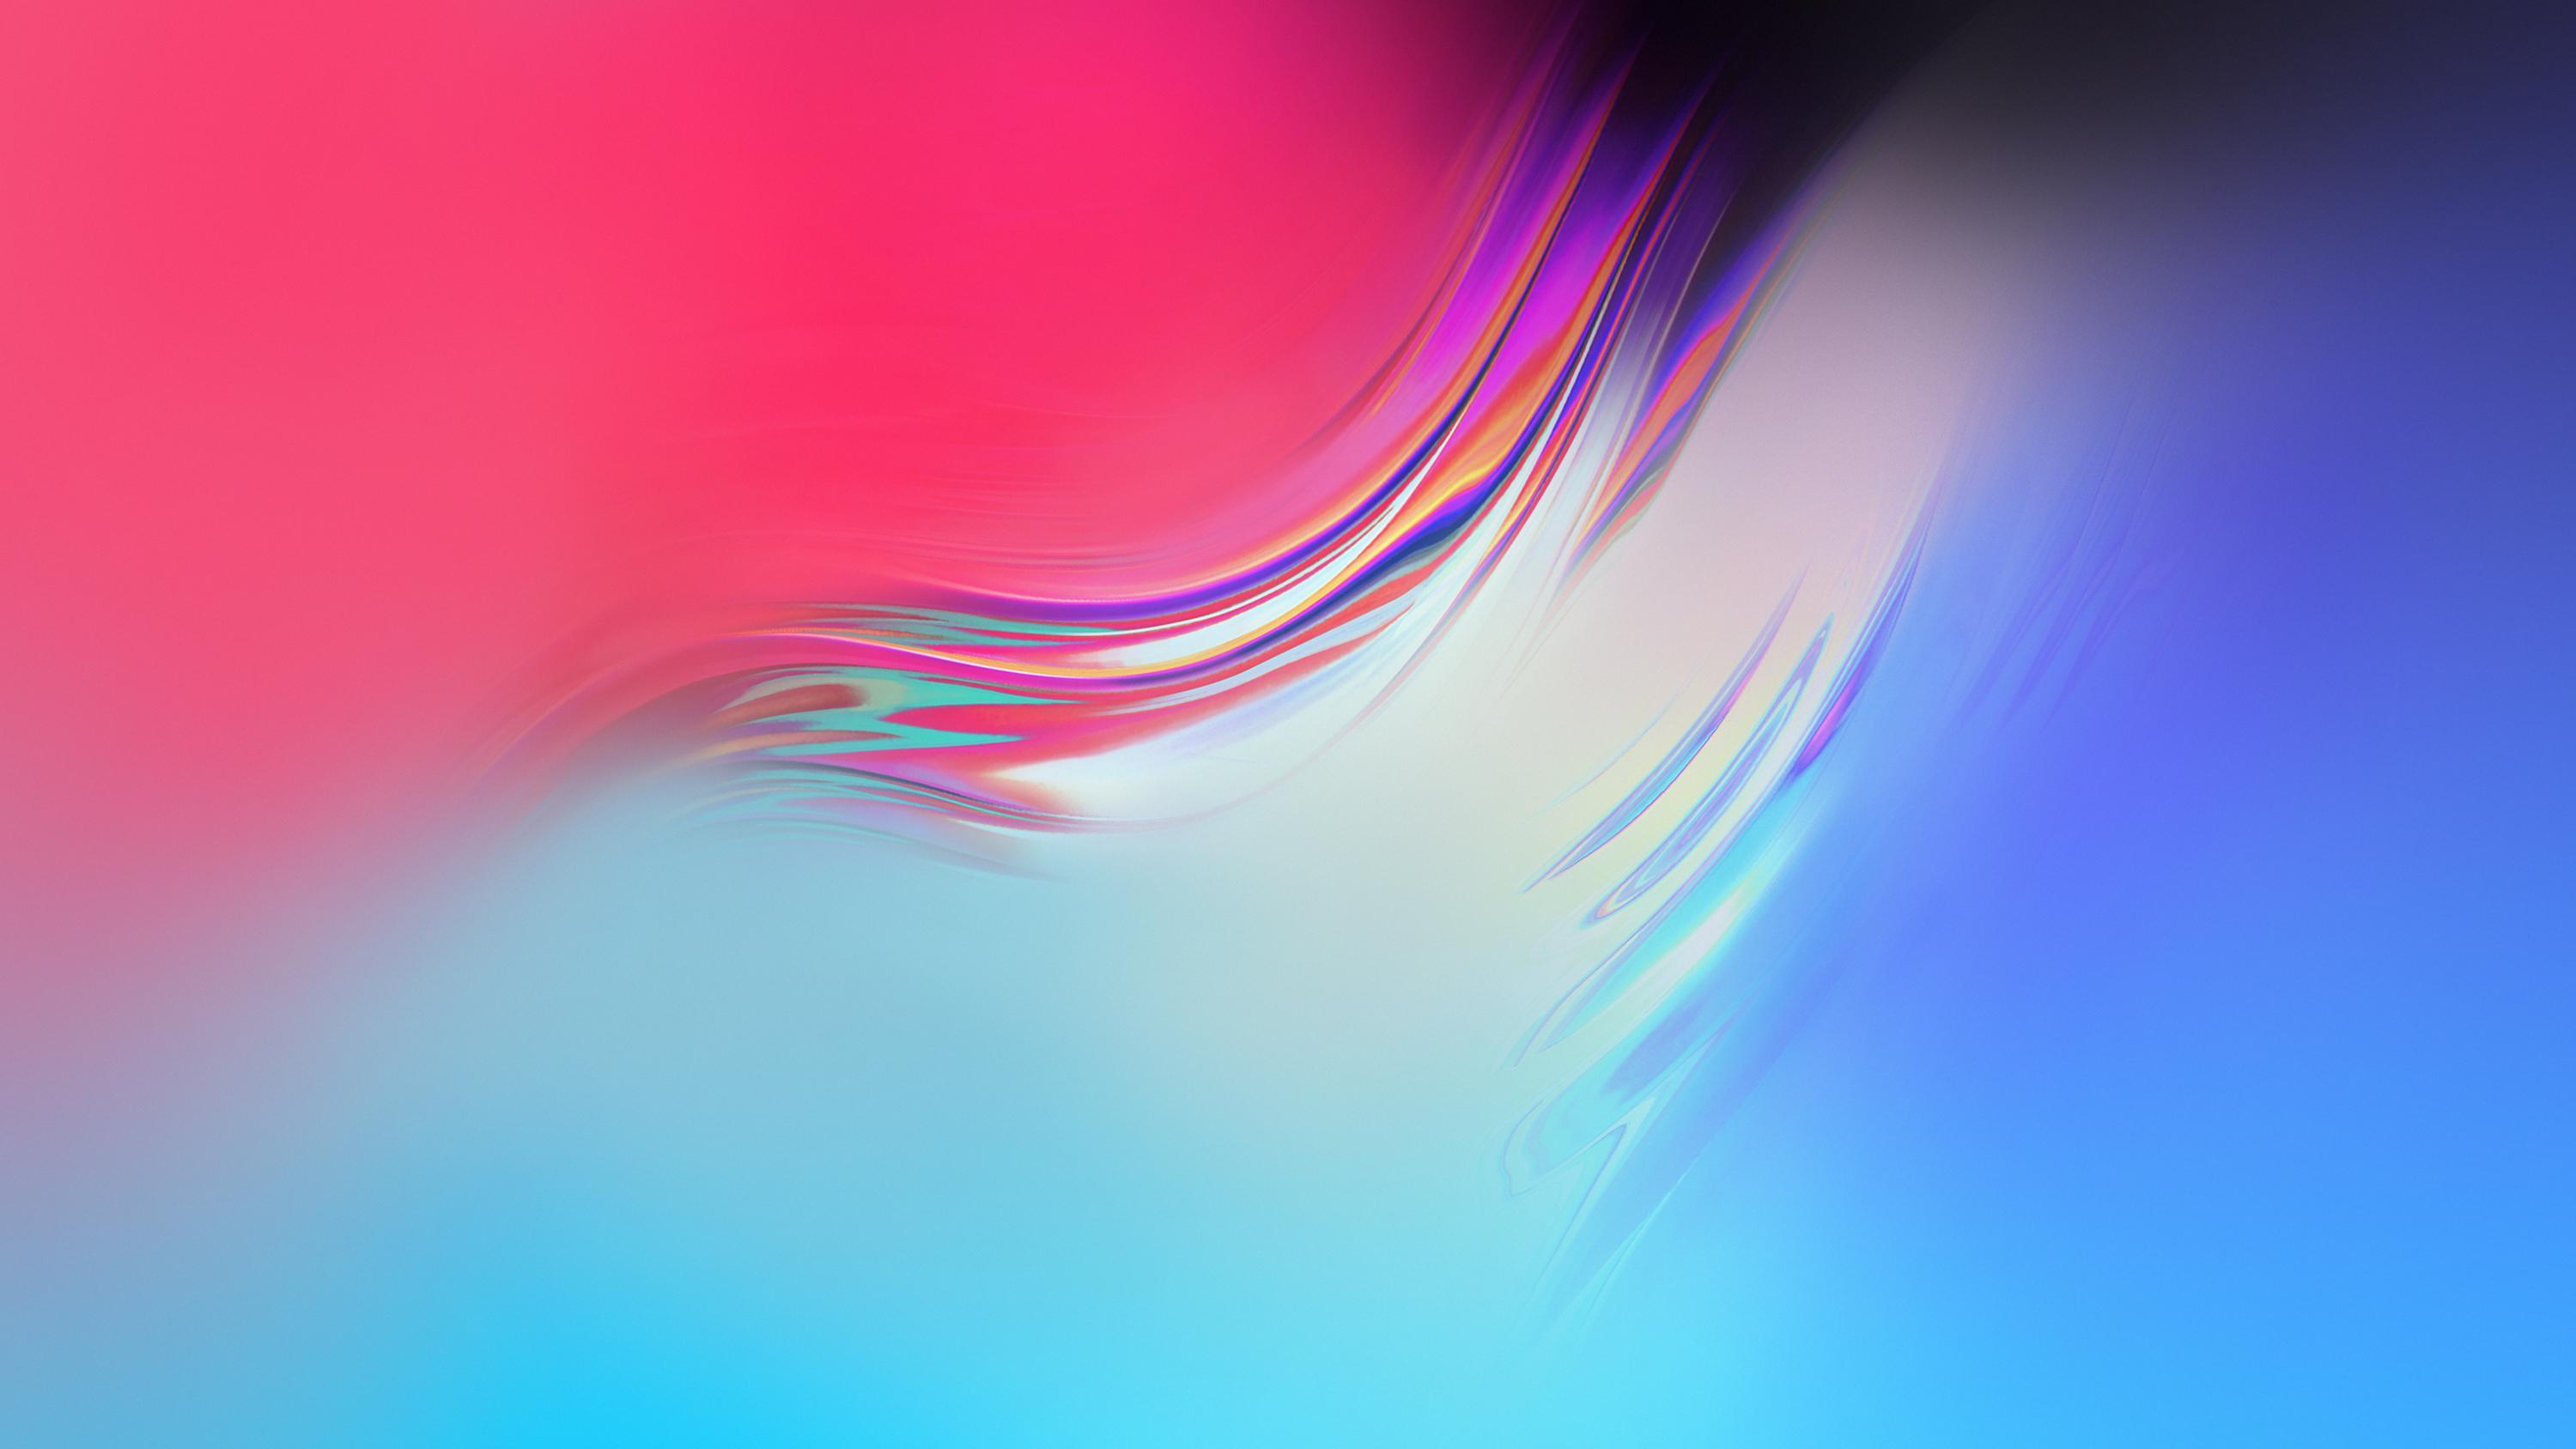 Gradient Abstract Samsung Galaxy S10 Wallpapers Wallpaper Cave